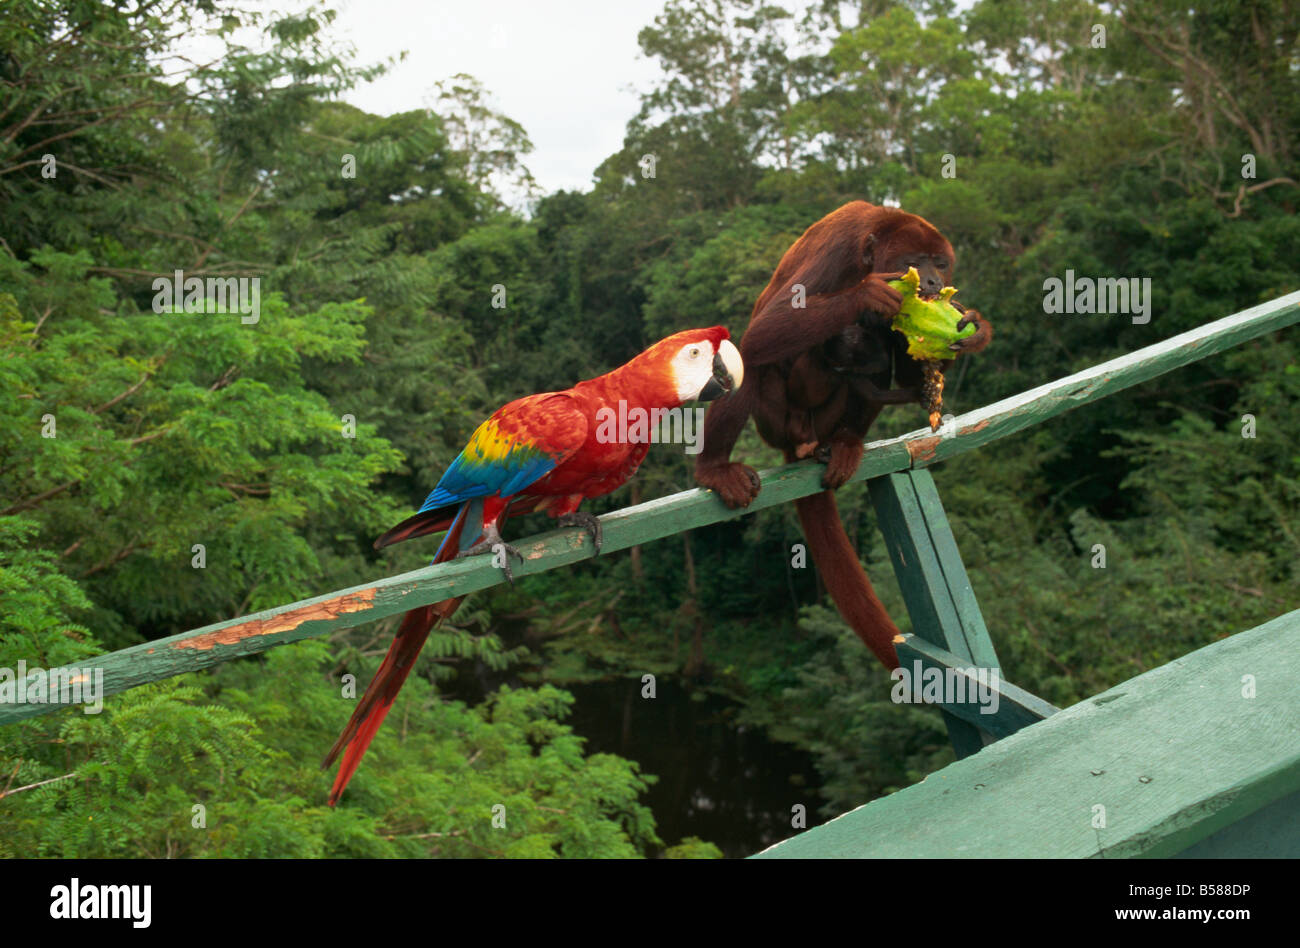 Macaw and monkey compete for fruit Amazon area Brazil South America - Stock Image